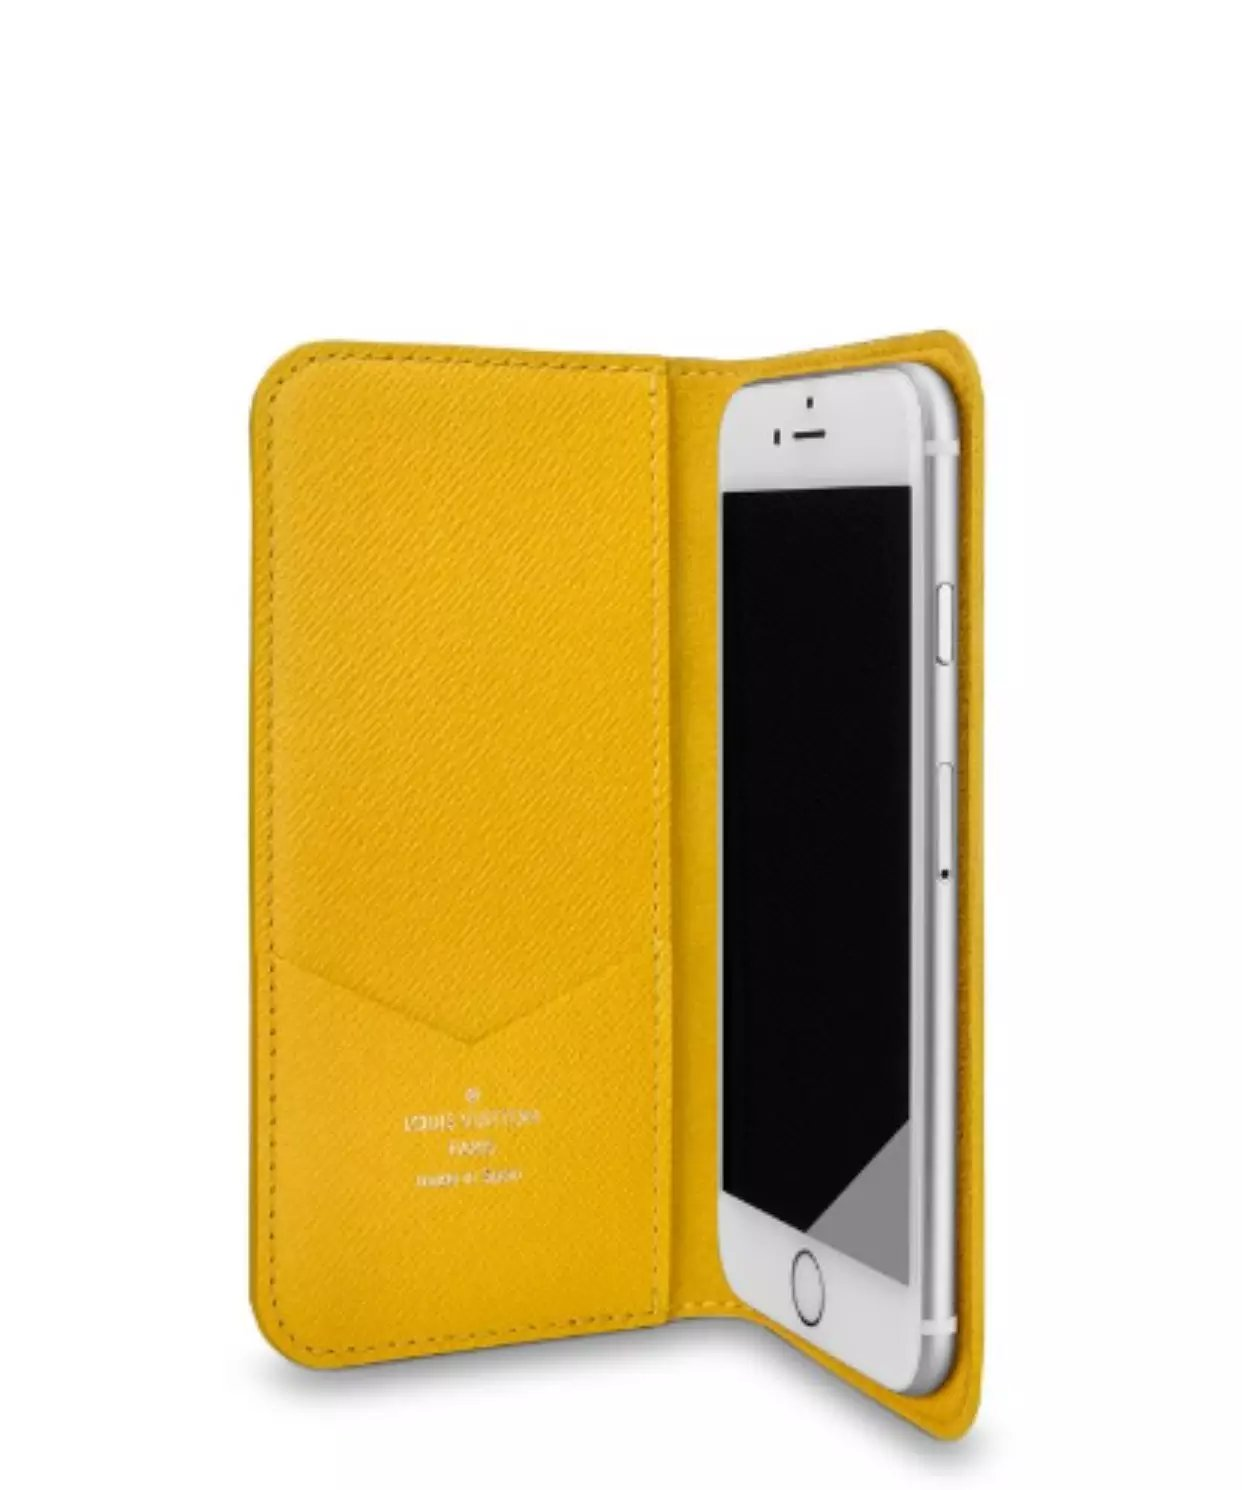 protective iphone 6 cases fashion iphone 6 cases fashion iphone6 case iphone 6 news today iphone 6 case cover iphone 6 protective cover websites to buy phone cases iphone for s cases tory burch iphone 6 case